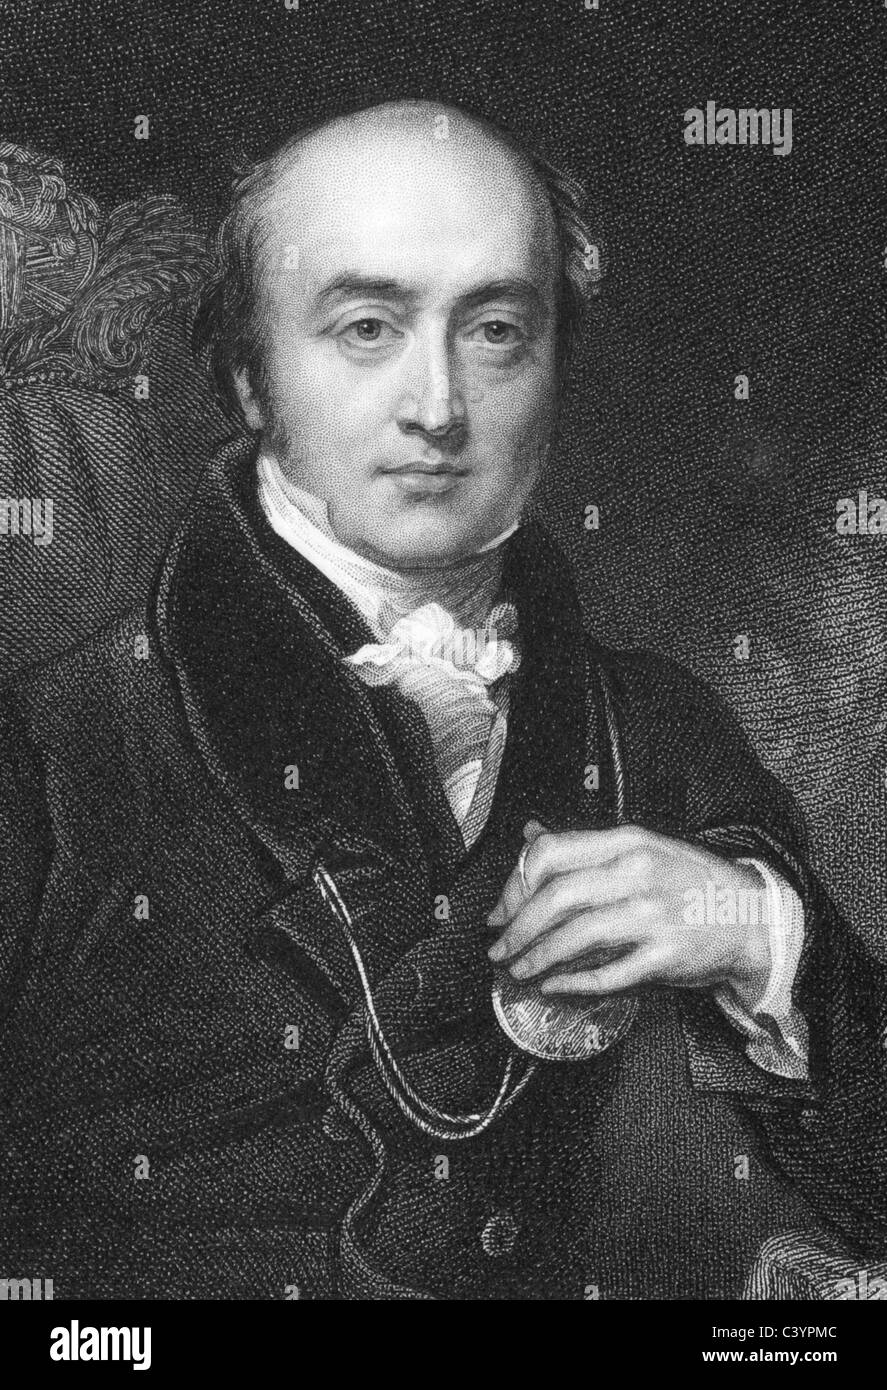 Sir Thomas Lawrence (1769-1830) on engraving from 1832. English portrait painter and president of the Royal Academy. - Stock Image